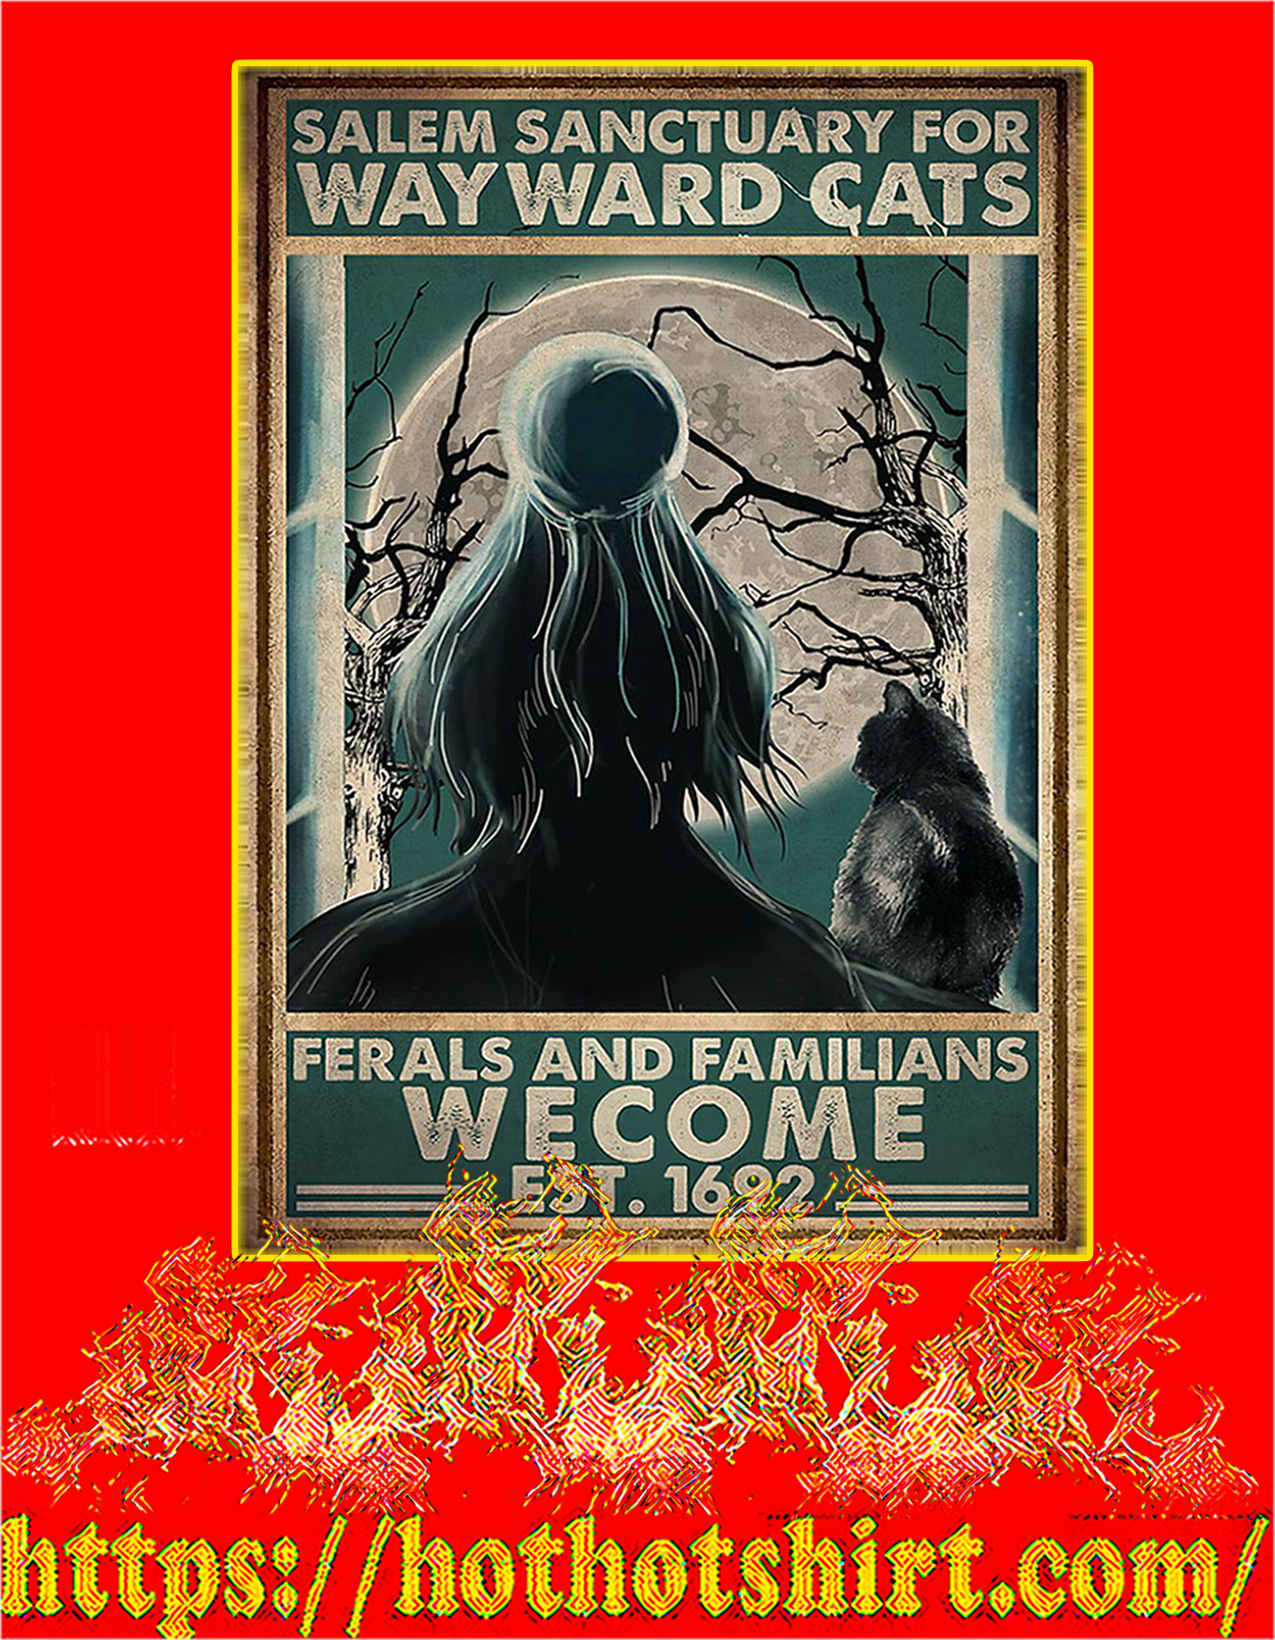 Witch Salem sanctuary for wayward cats ferals and familians welcome est 1692 poster - A2